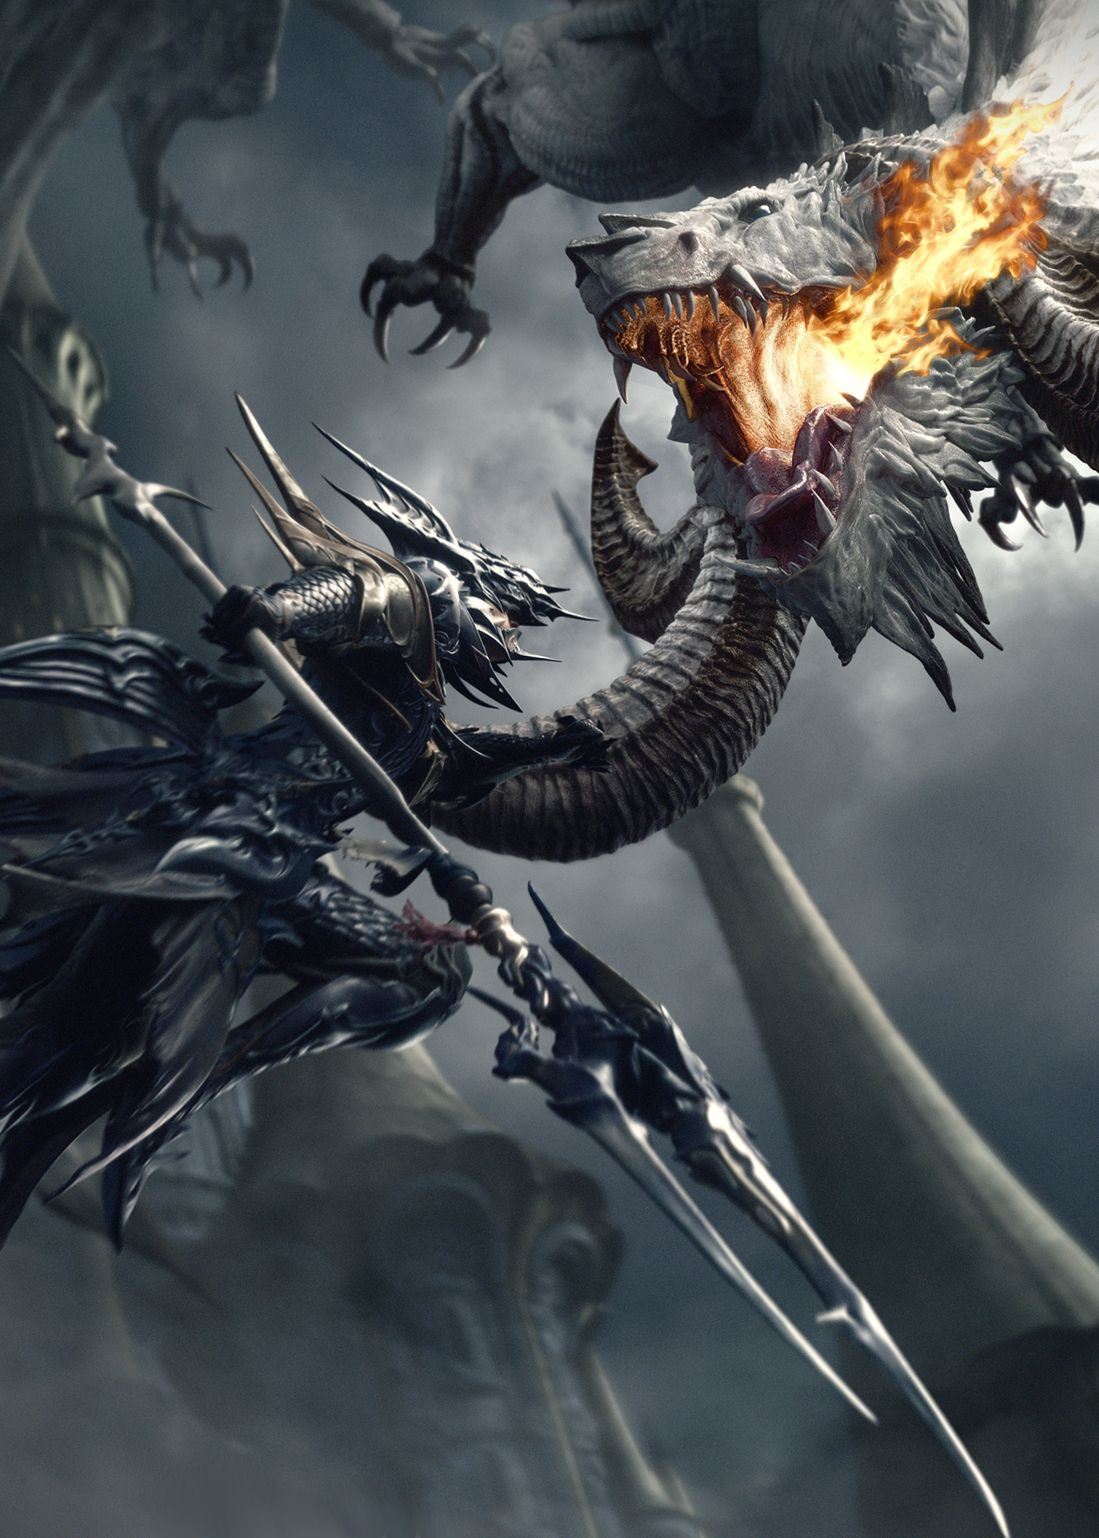 20+ Ffxiv Realm Reborn Dragoon Pictures and Ideas on STEM